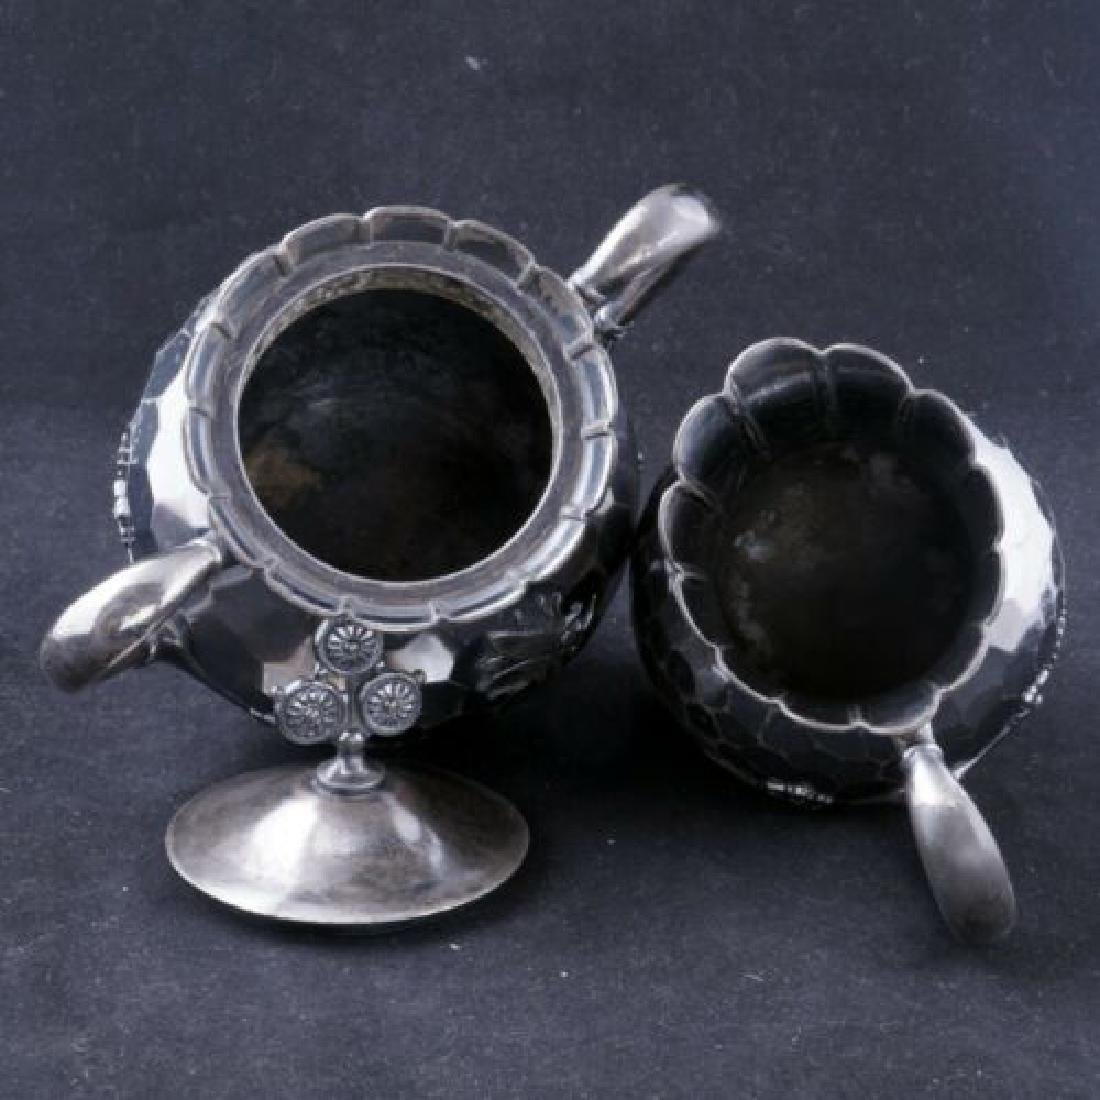 Aesthetic movement Victorian silver plate sugar and - 4